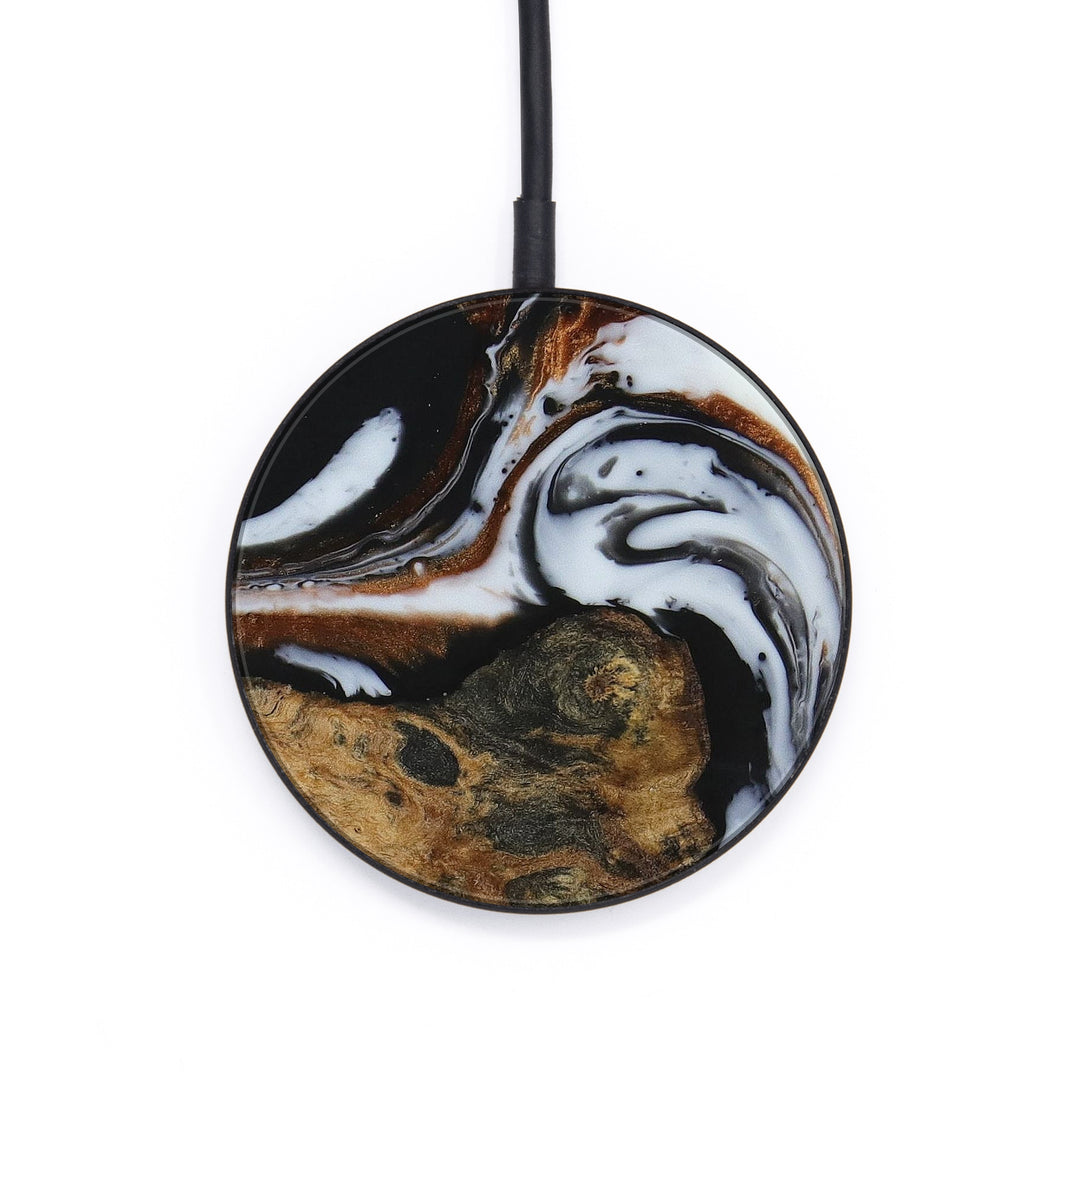 Circle Wood+Resin Wireless Charger - Eden (Black & White, 397479)